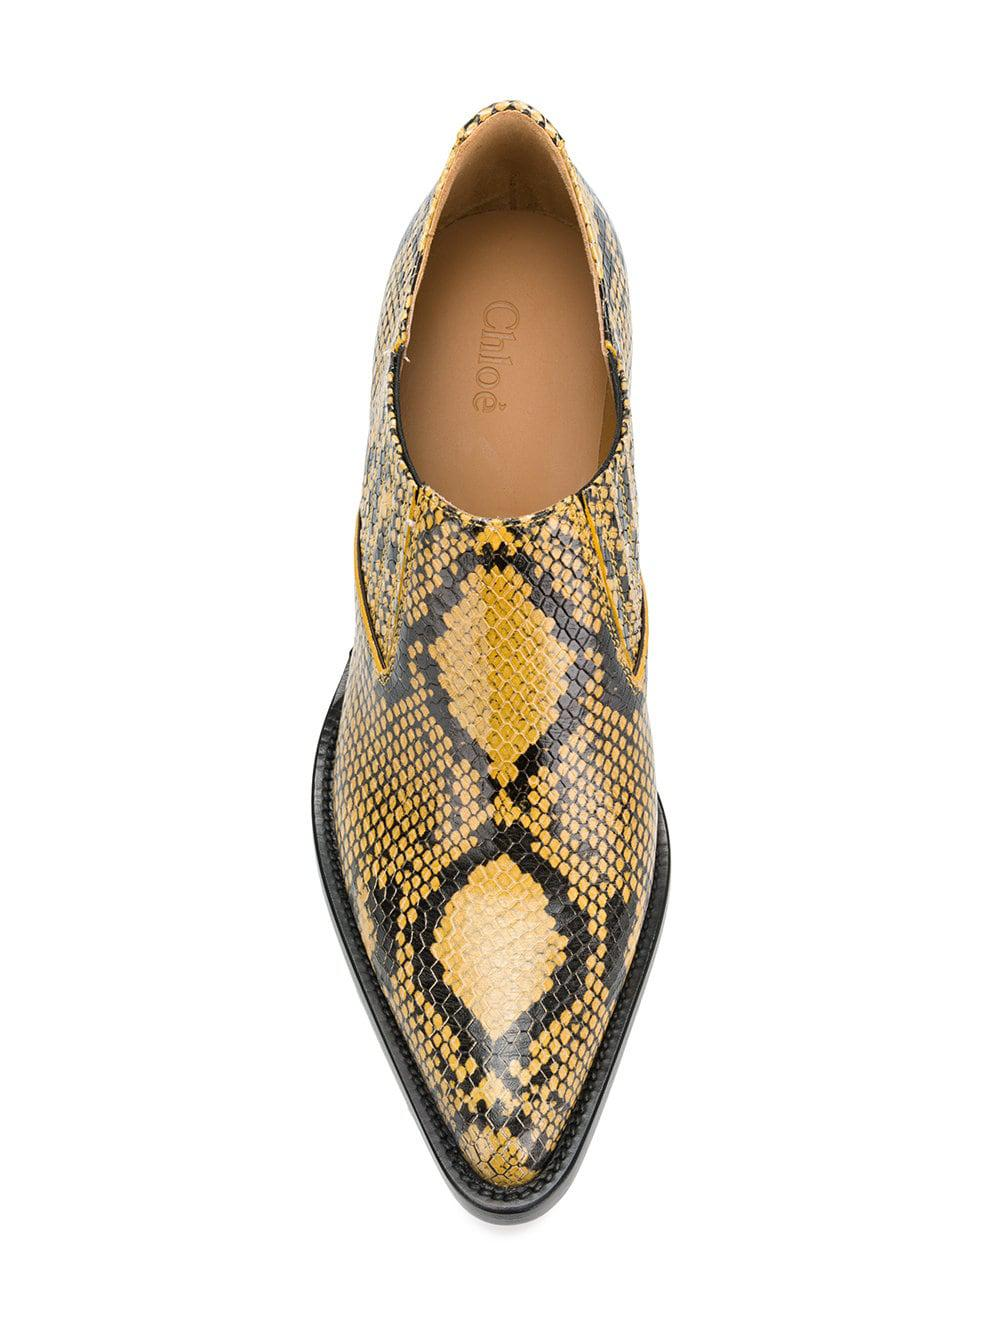 Chloé Leather Snake Printed Boots in Yellow